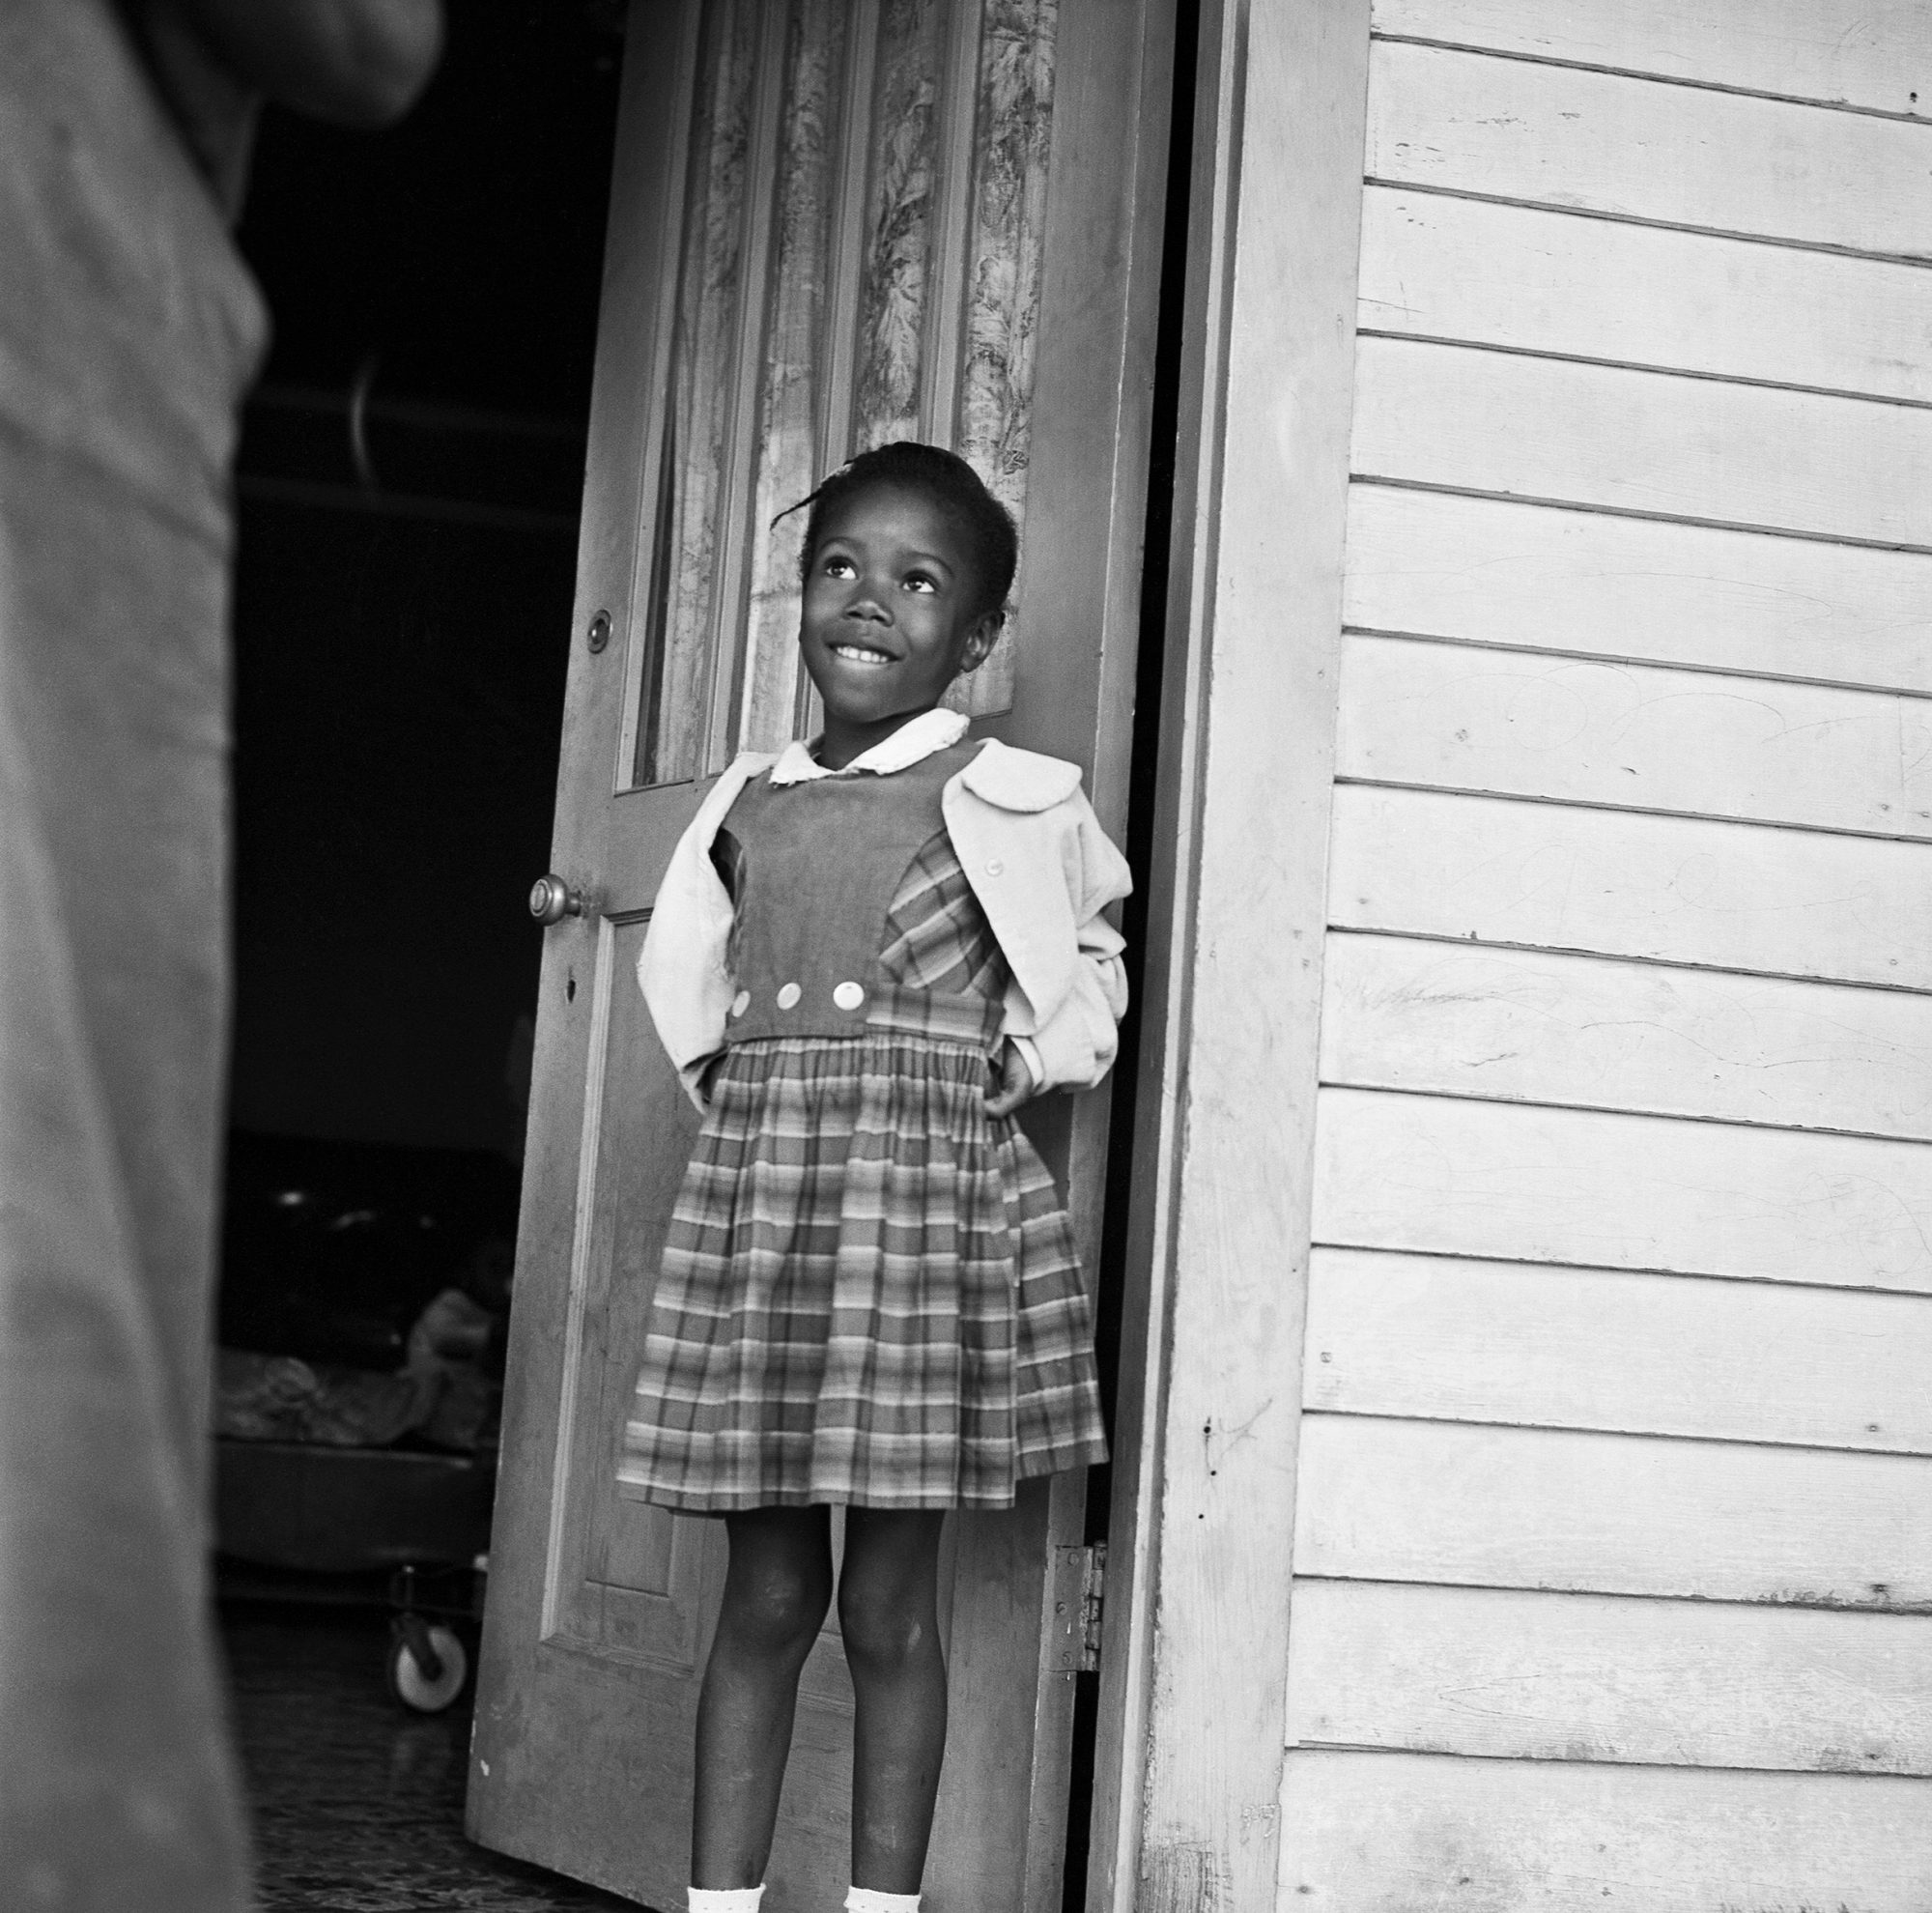 #SeeHer Story Honors Civil Rights Leader Ruby Bridges on Anniversary of Attending White School